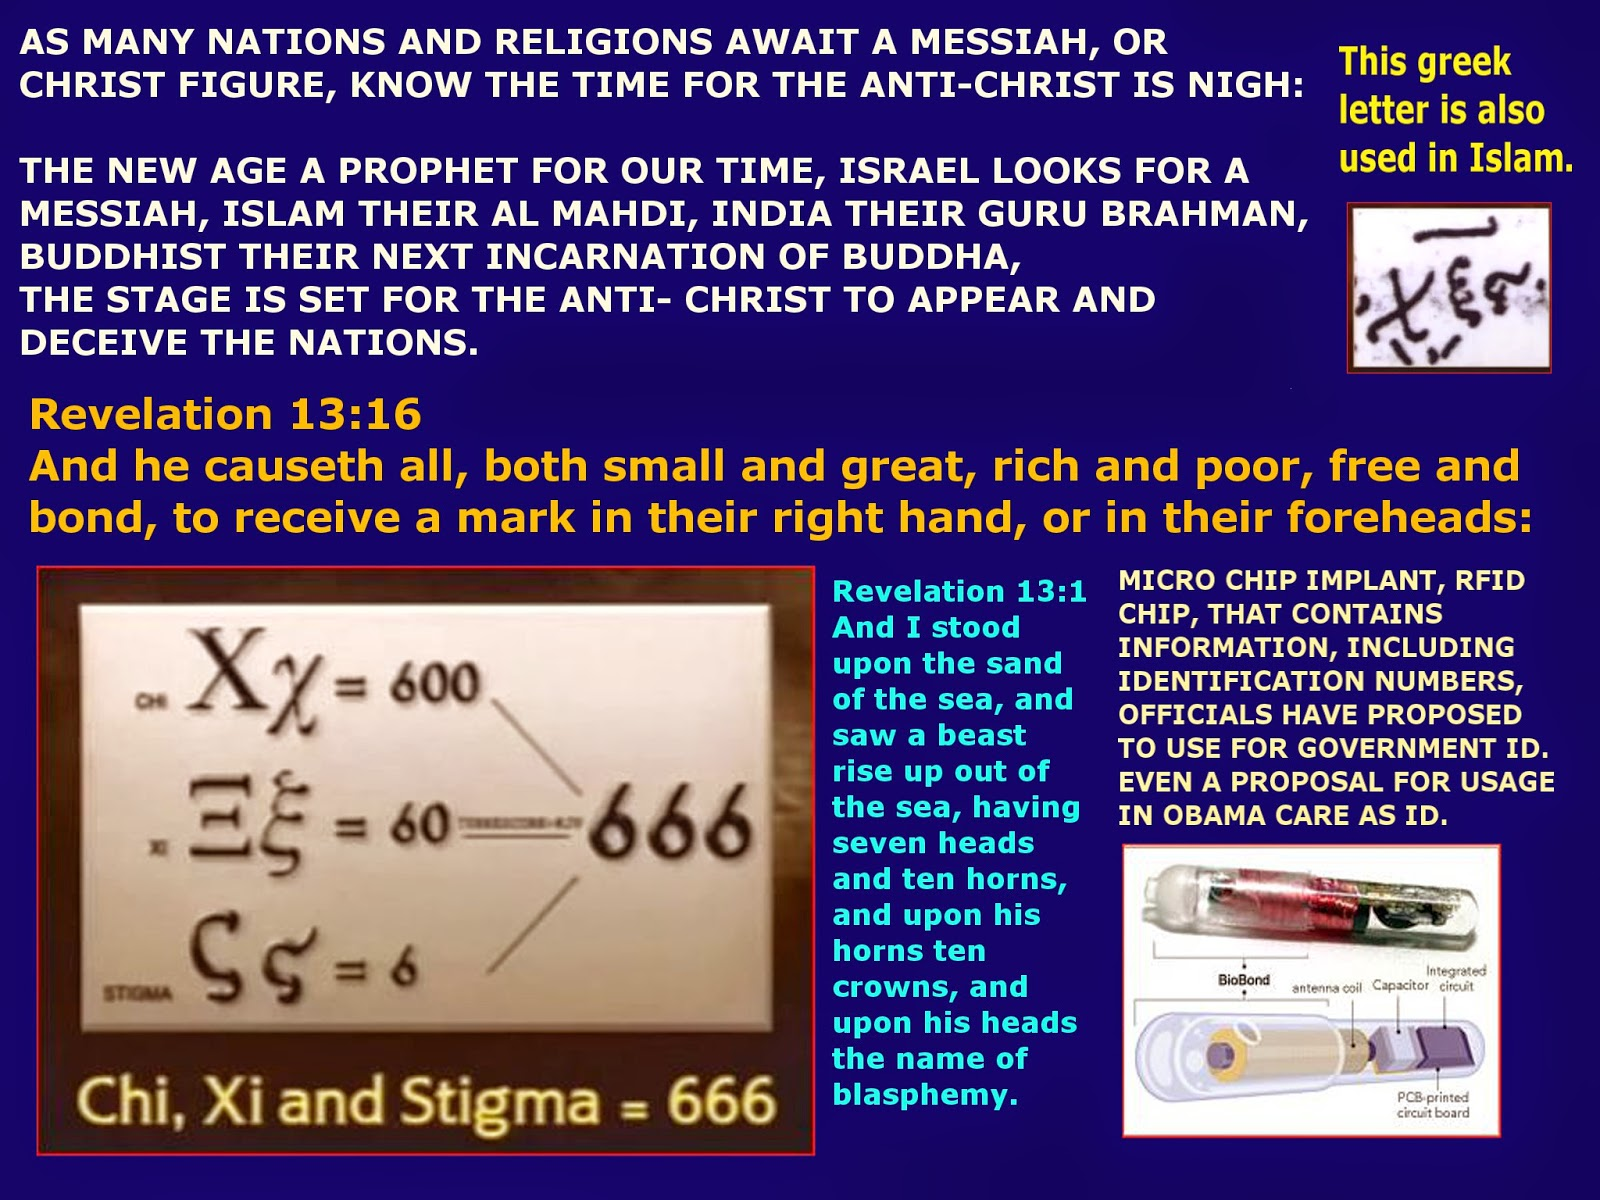 Carrie geren scoggins political newsletter end times prophecy attaching photos on the mark of the beast symbols and one is used in islam will it be their al mahdi end times bible prophecy channel by carrie geren buycottarizona